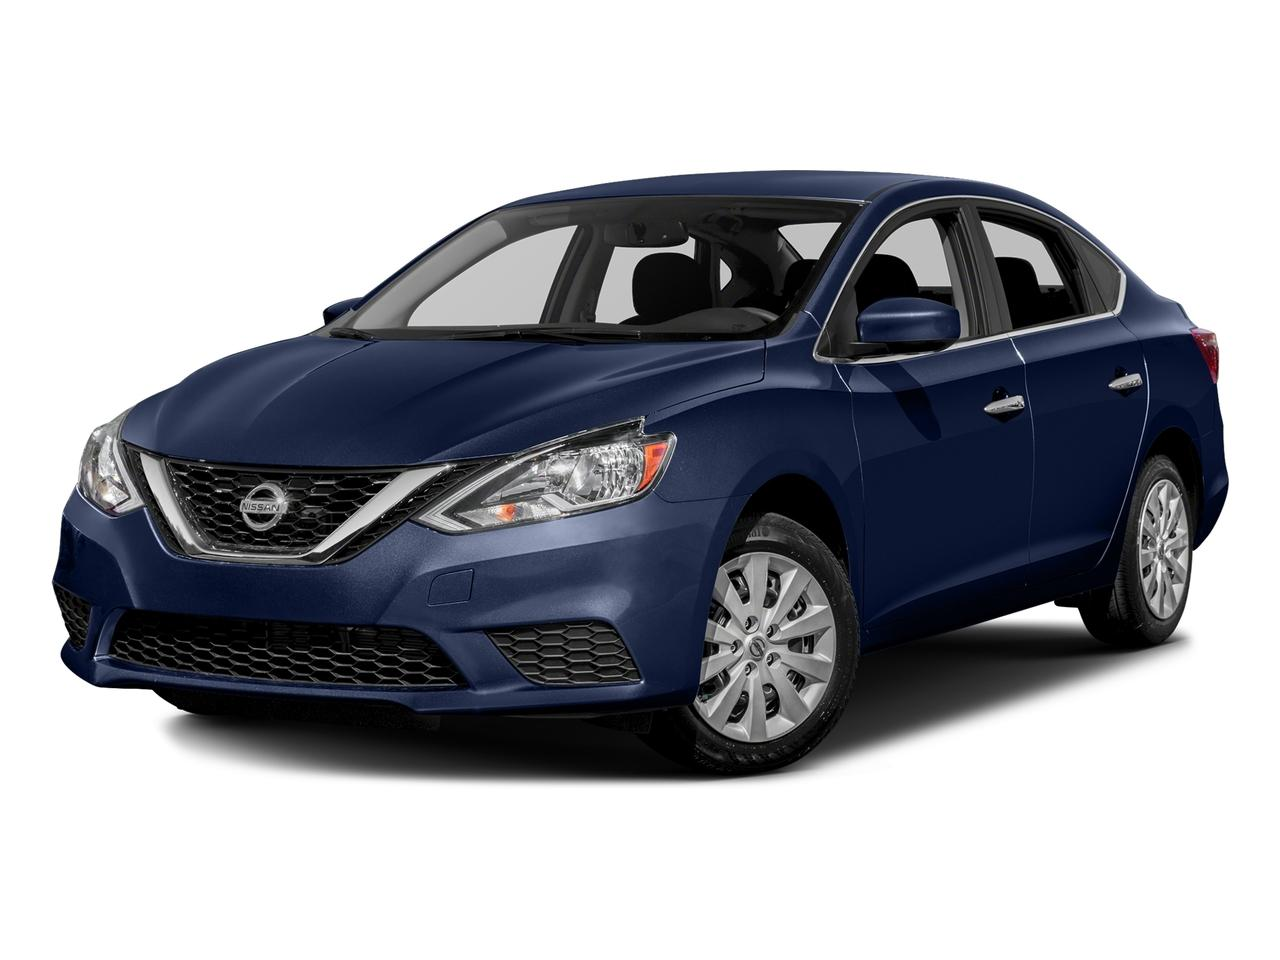 2018 Nissan Sentra Vehicle Photo in Jenkintown, PA 19046